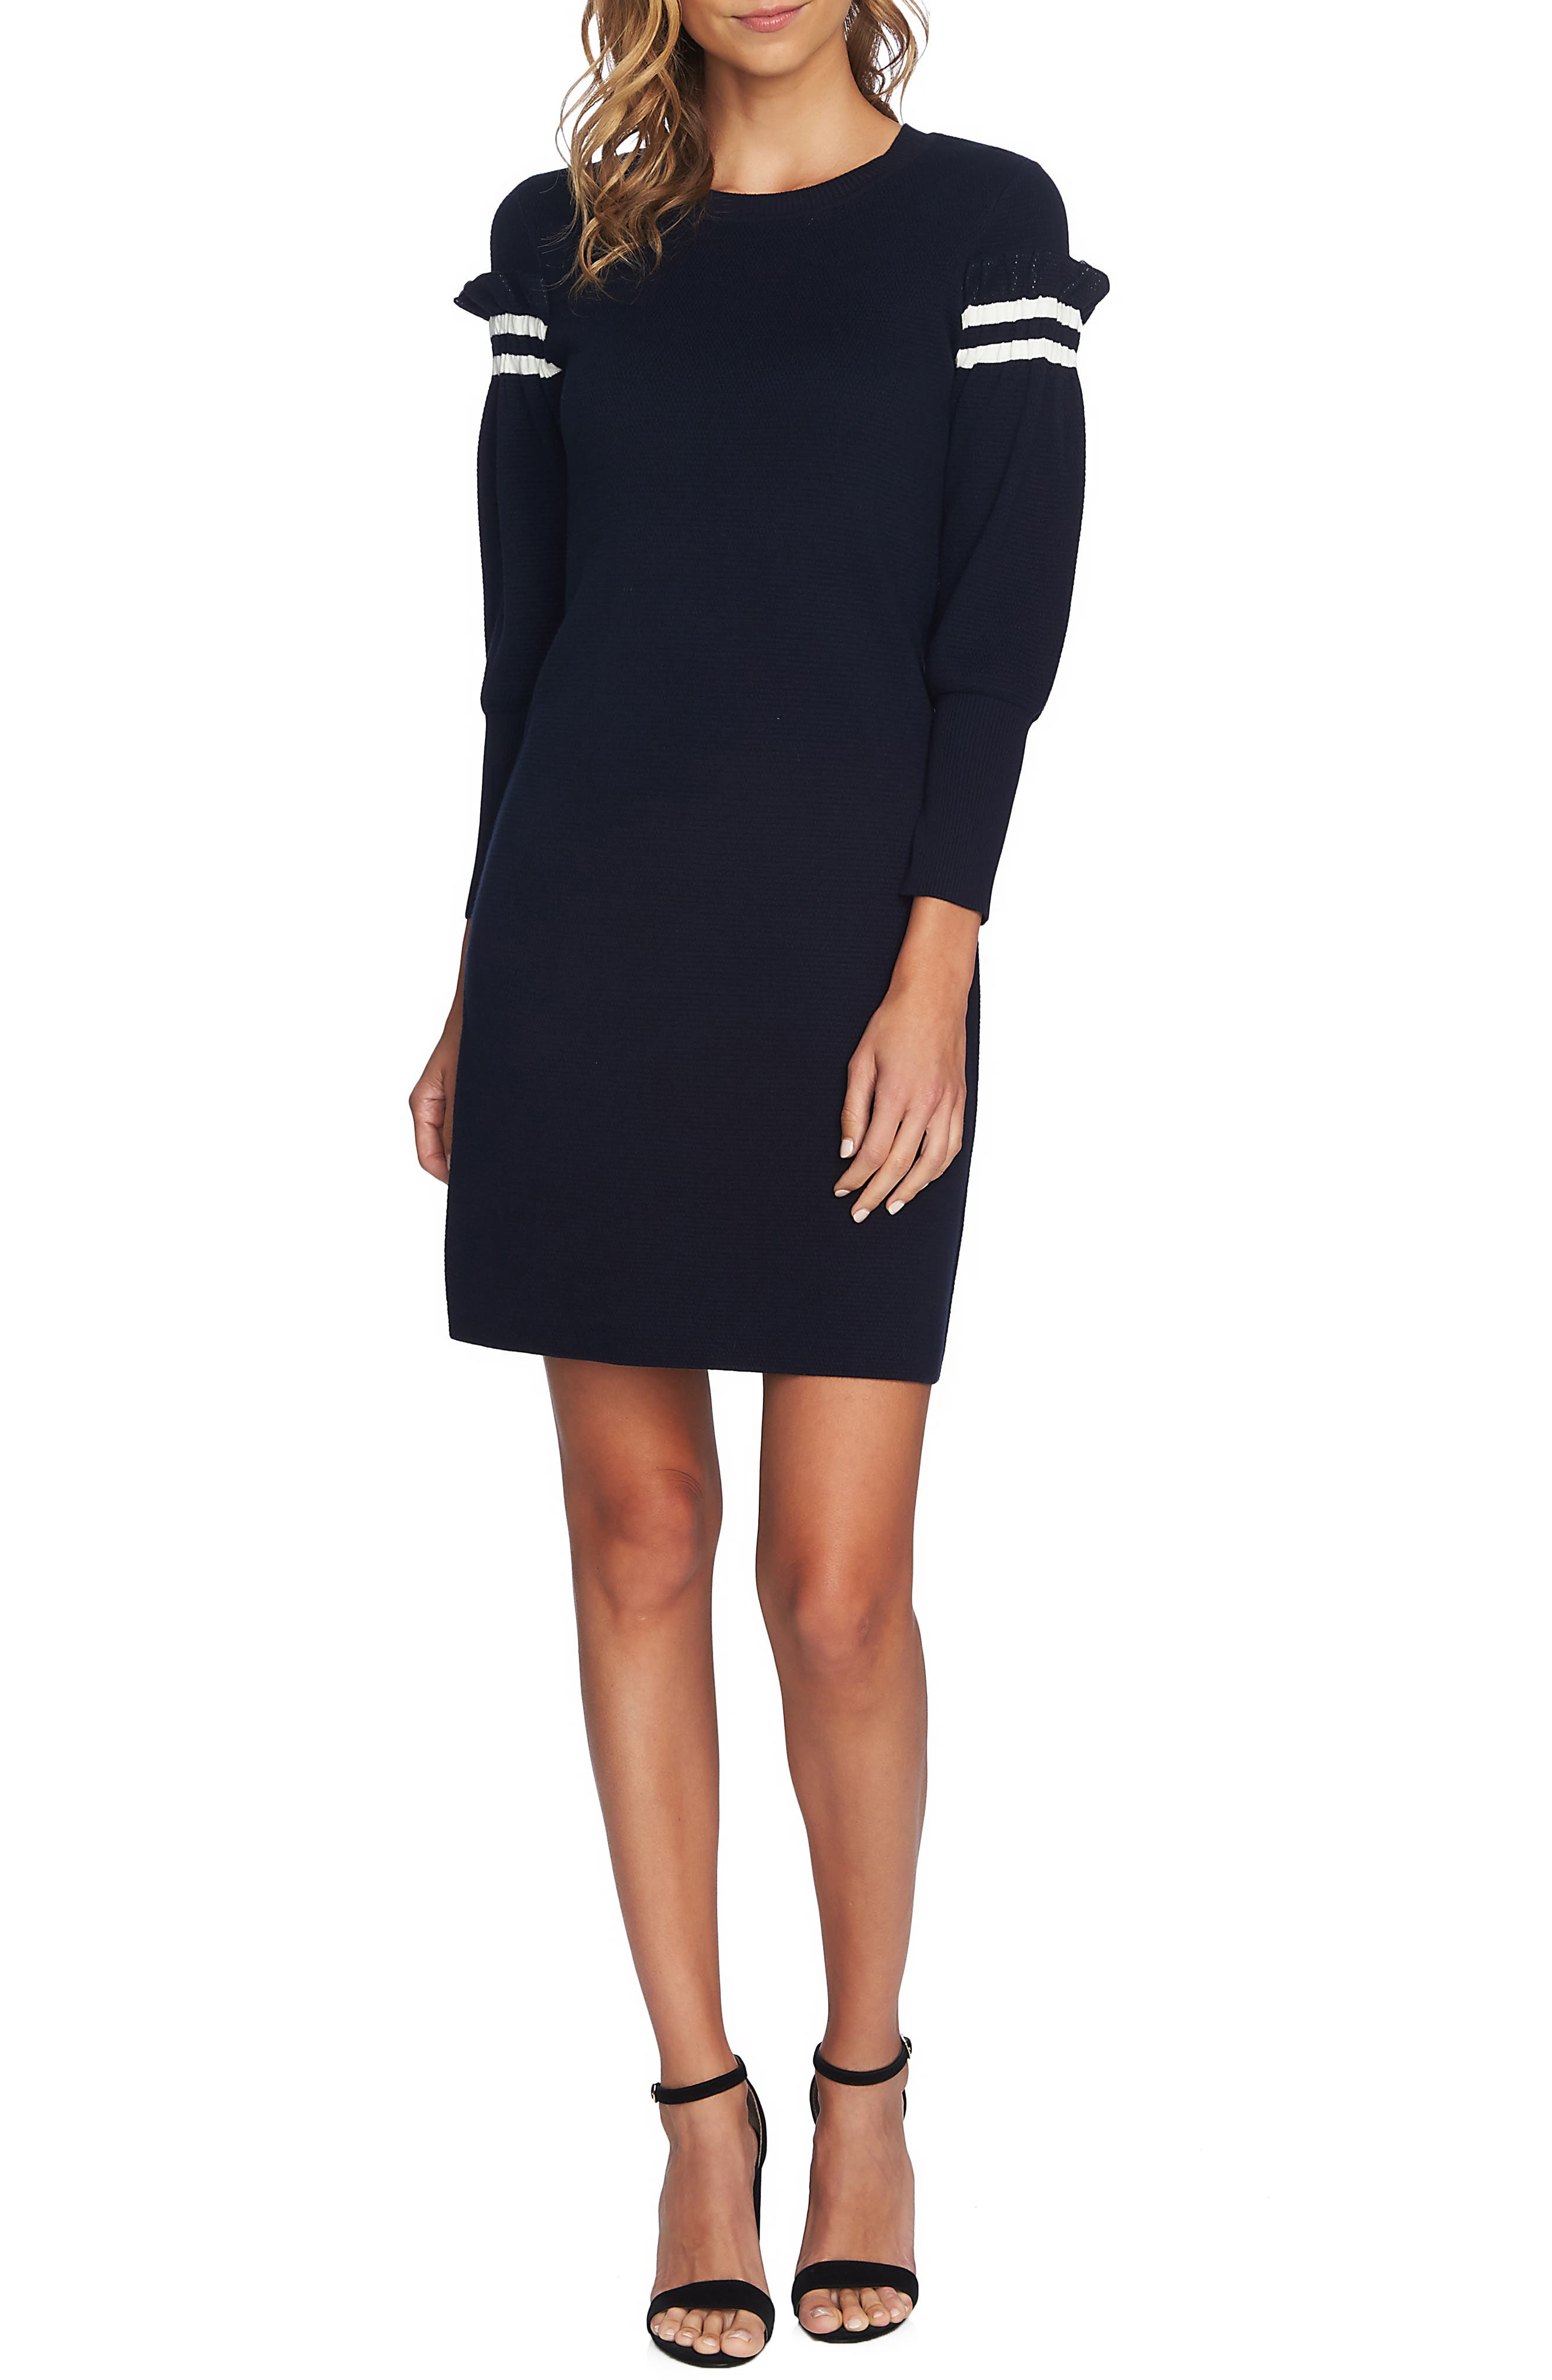 Cece Puffed Sleeve Sweater Dress